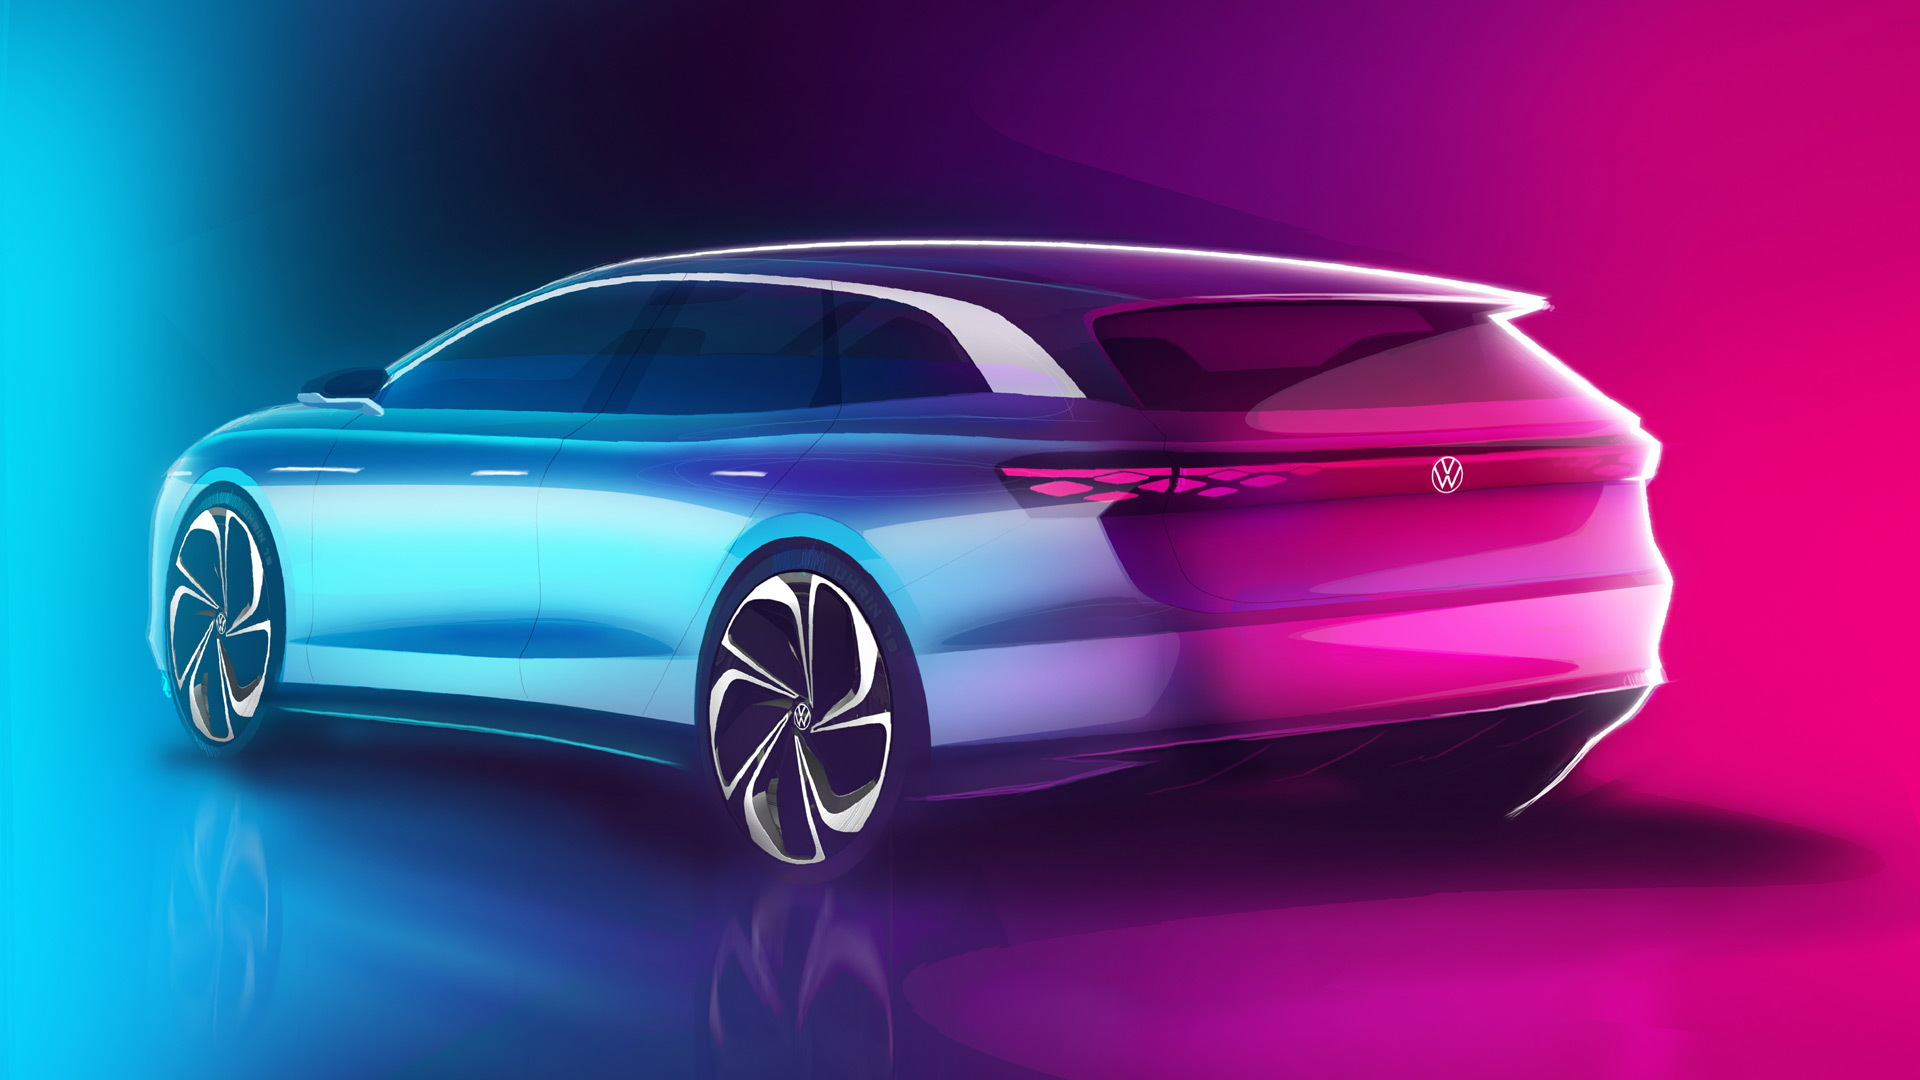 Teaser for Volkswagen ID Space Vizzion concept debuting on November 19, 2019